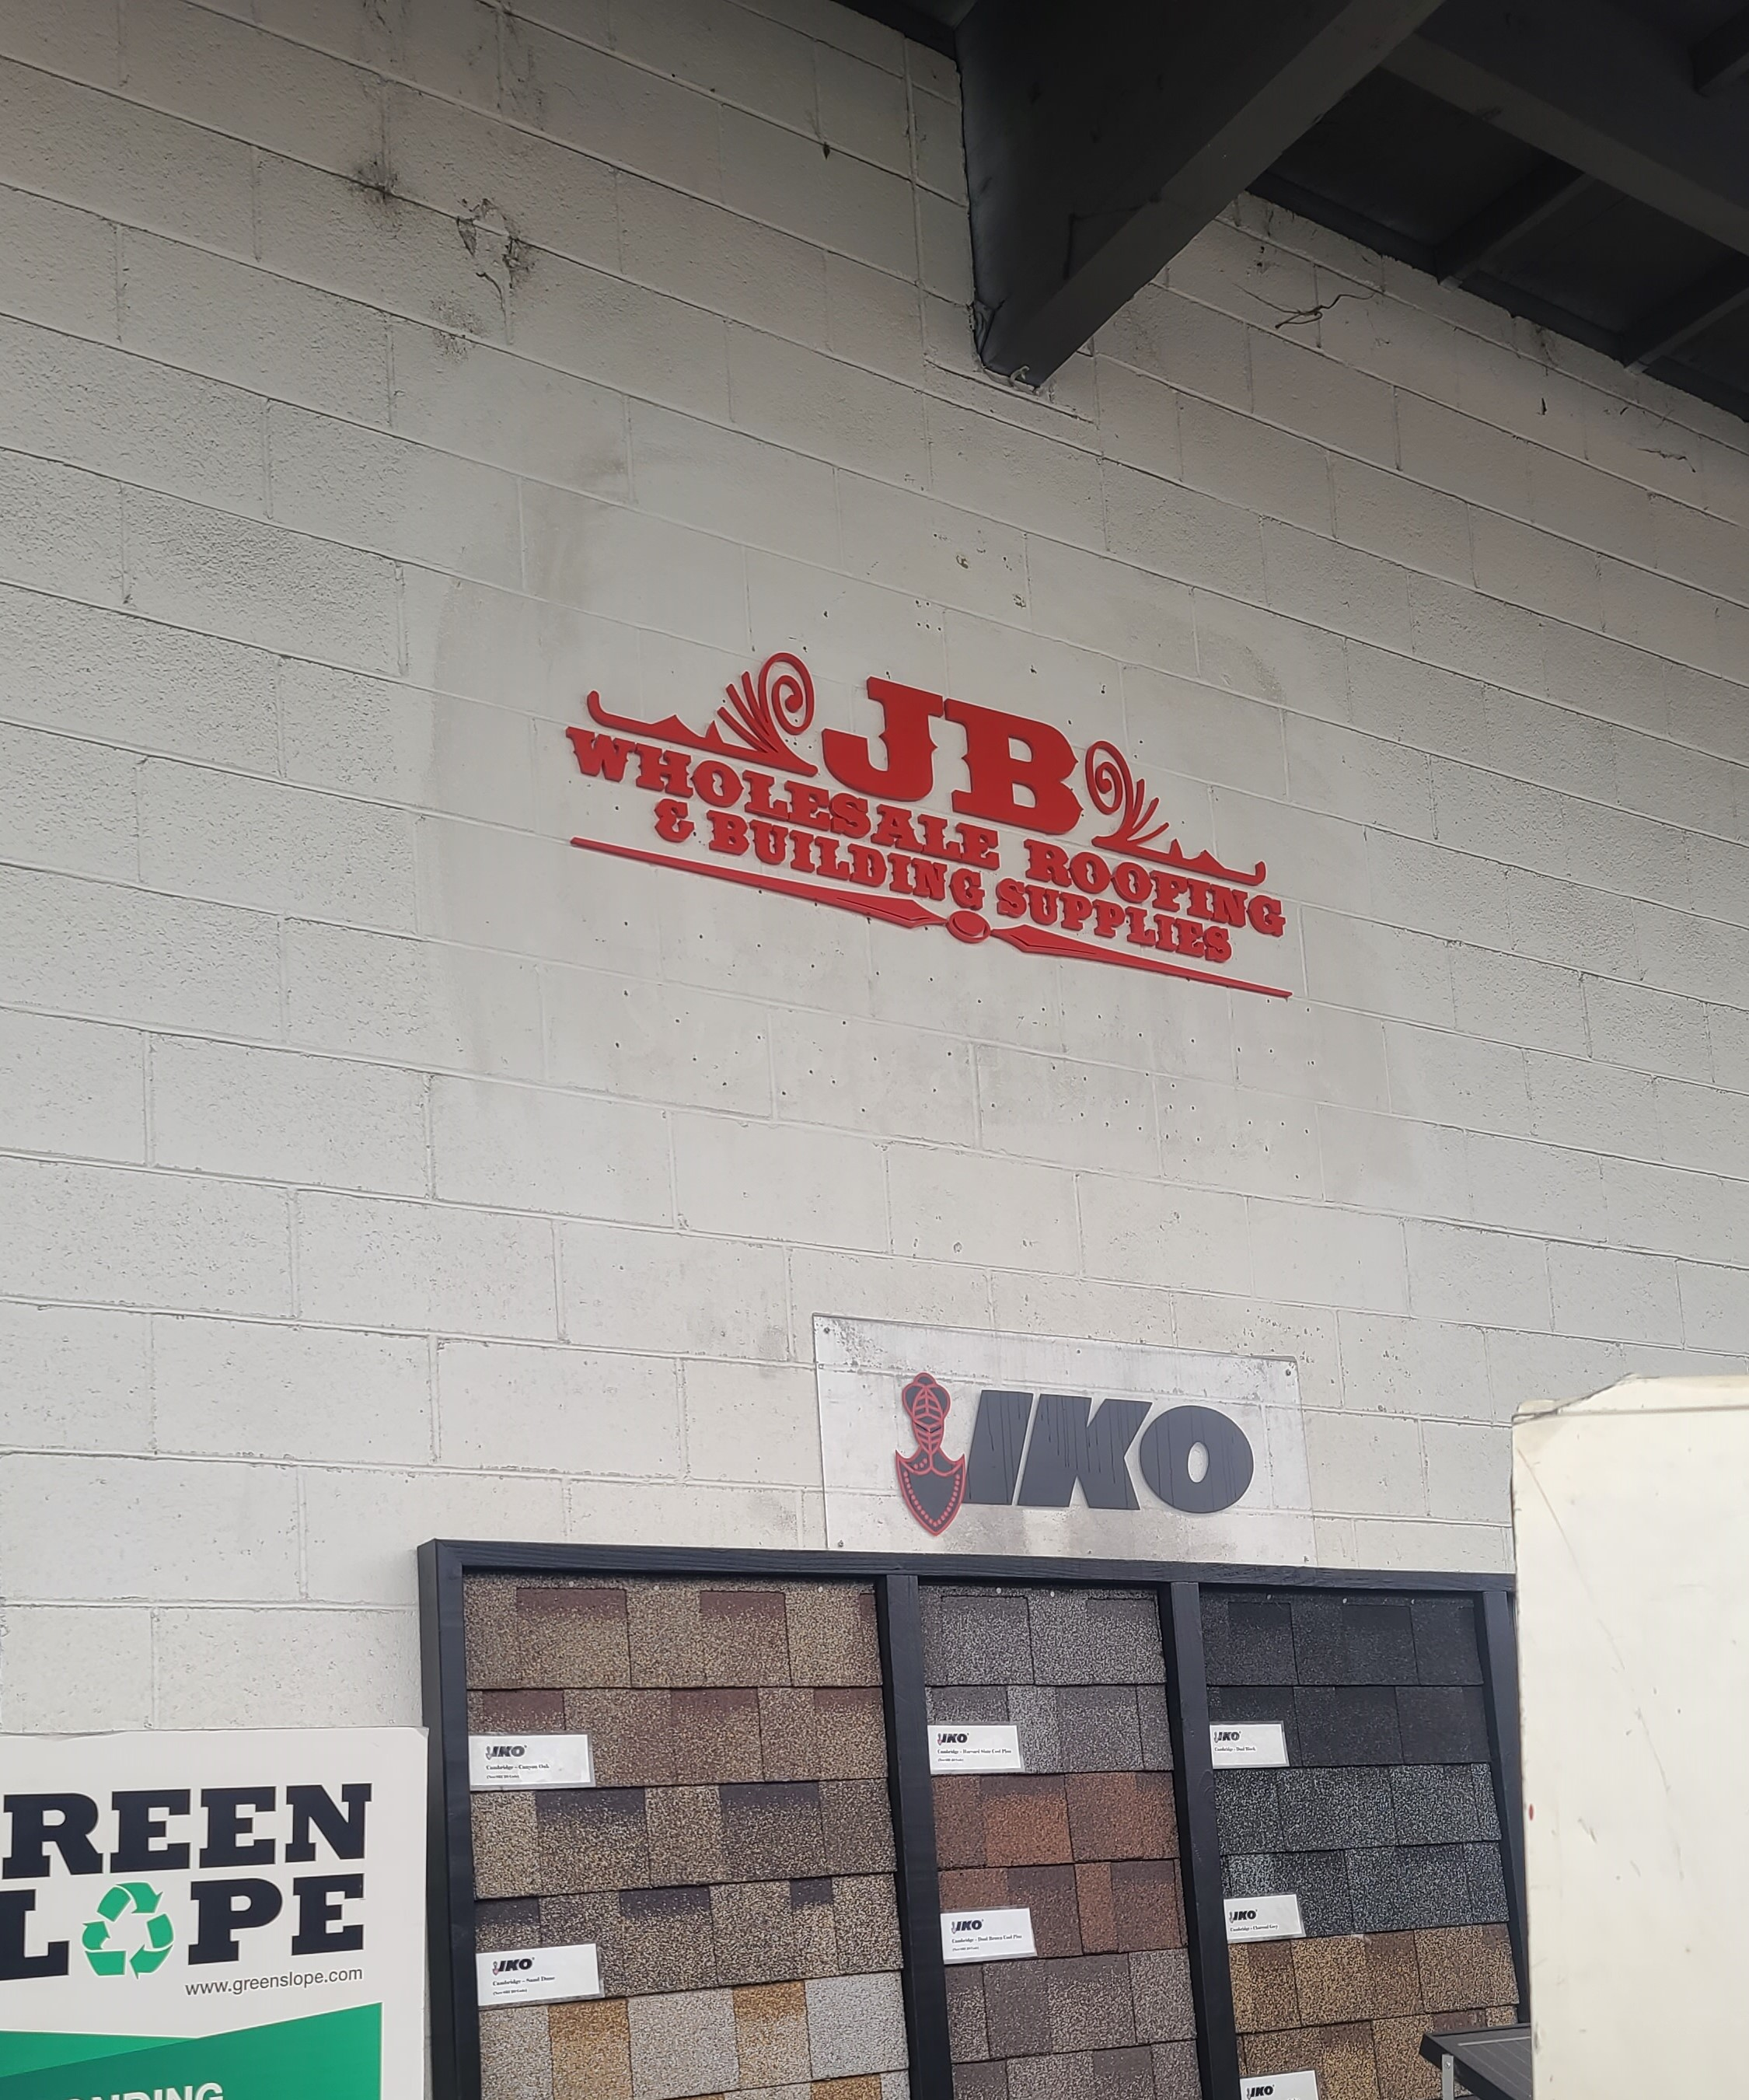 These are the maxmetal 3D letters sign we fabricated and installed for JB Wholesale Roofing & Building Supplies' Azusa location.